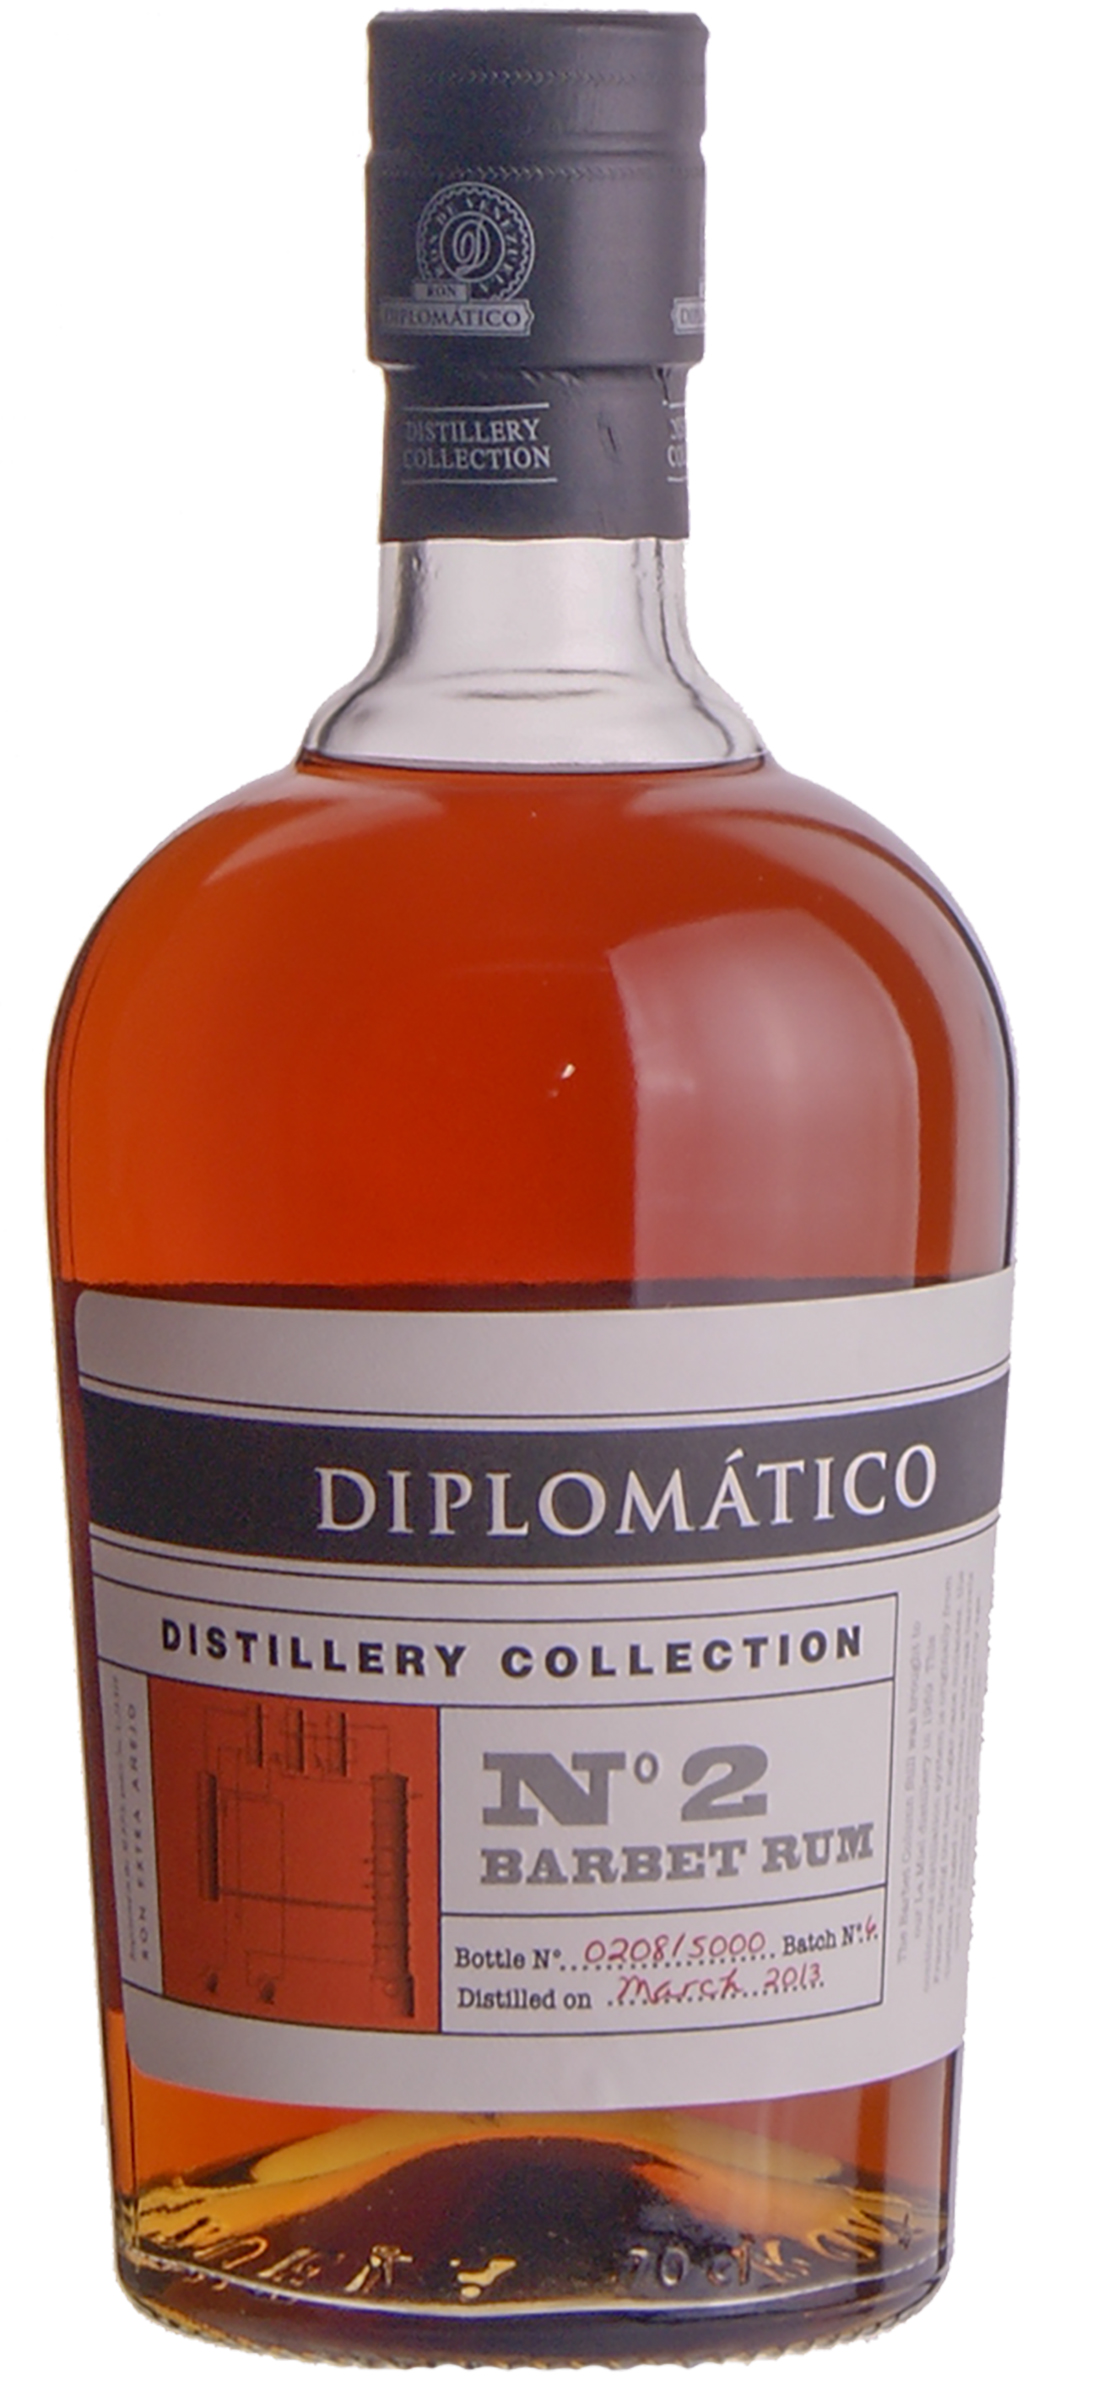 Diplomático Distillery Collection Nº2 Barbet